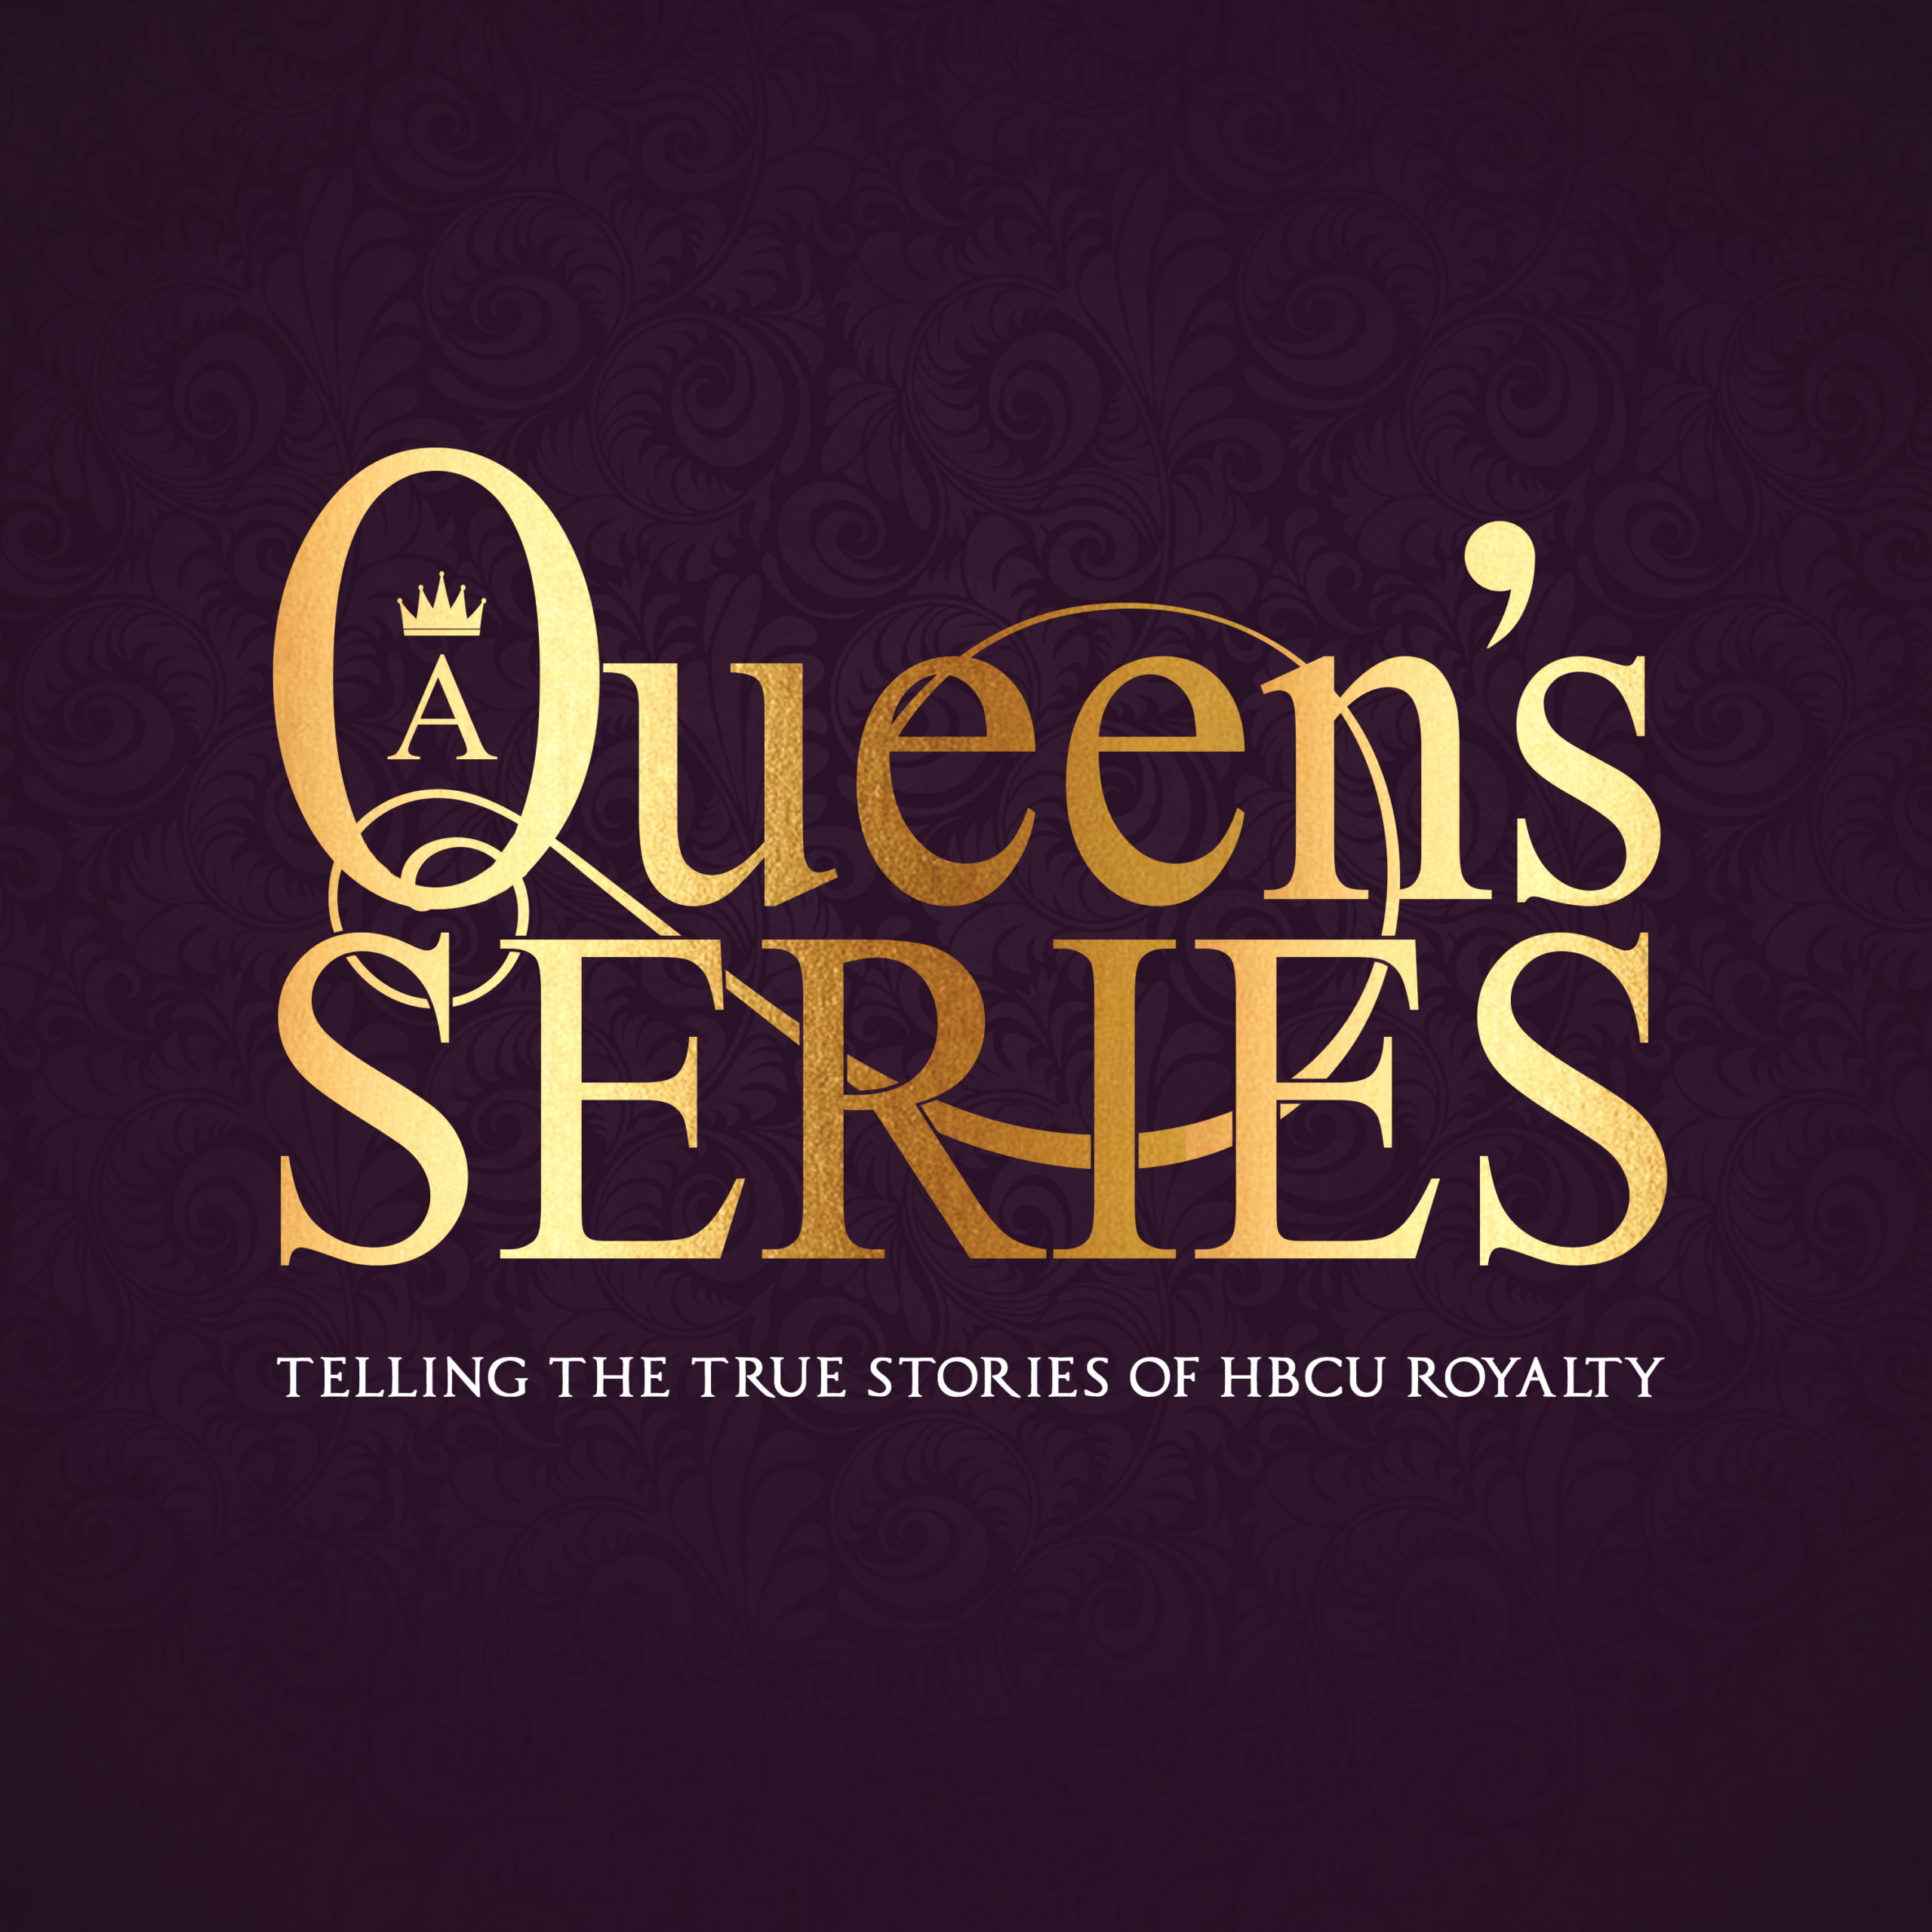 A Queen Series Logo June 22, 2020